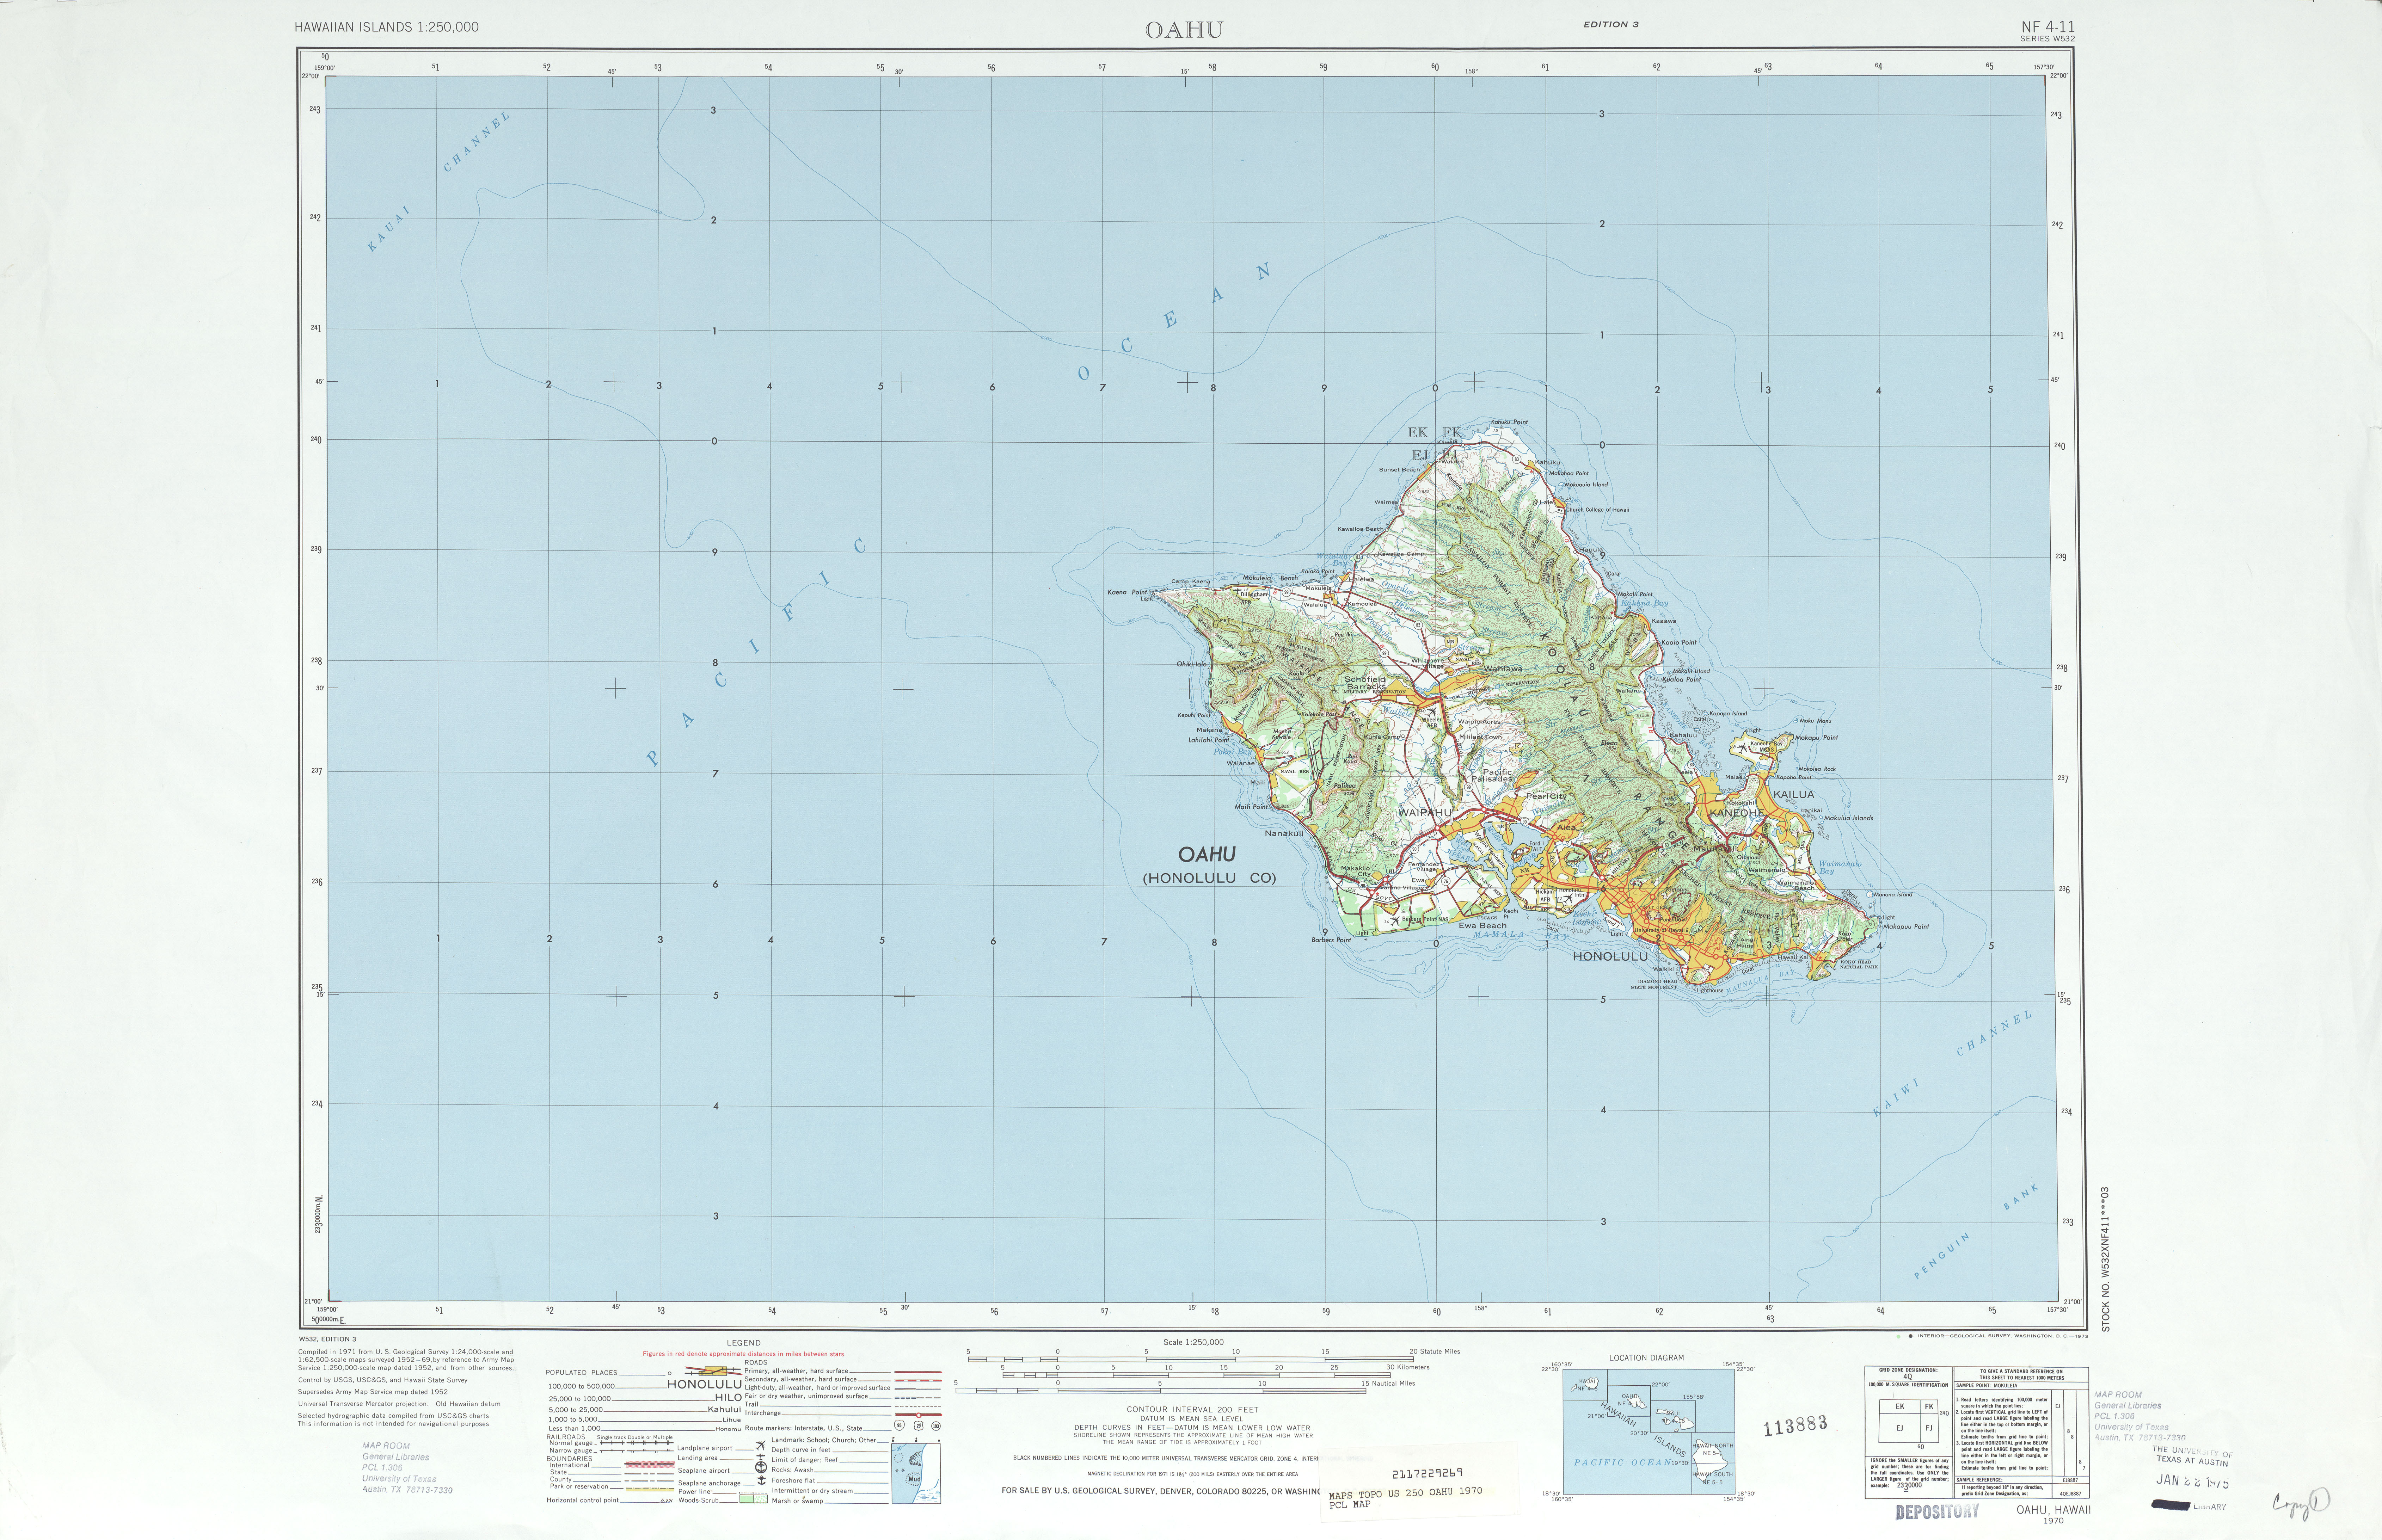 Oahu Topographic Map Sheet, United States 1970